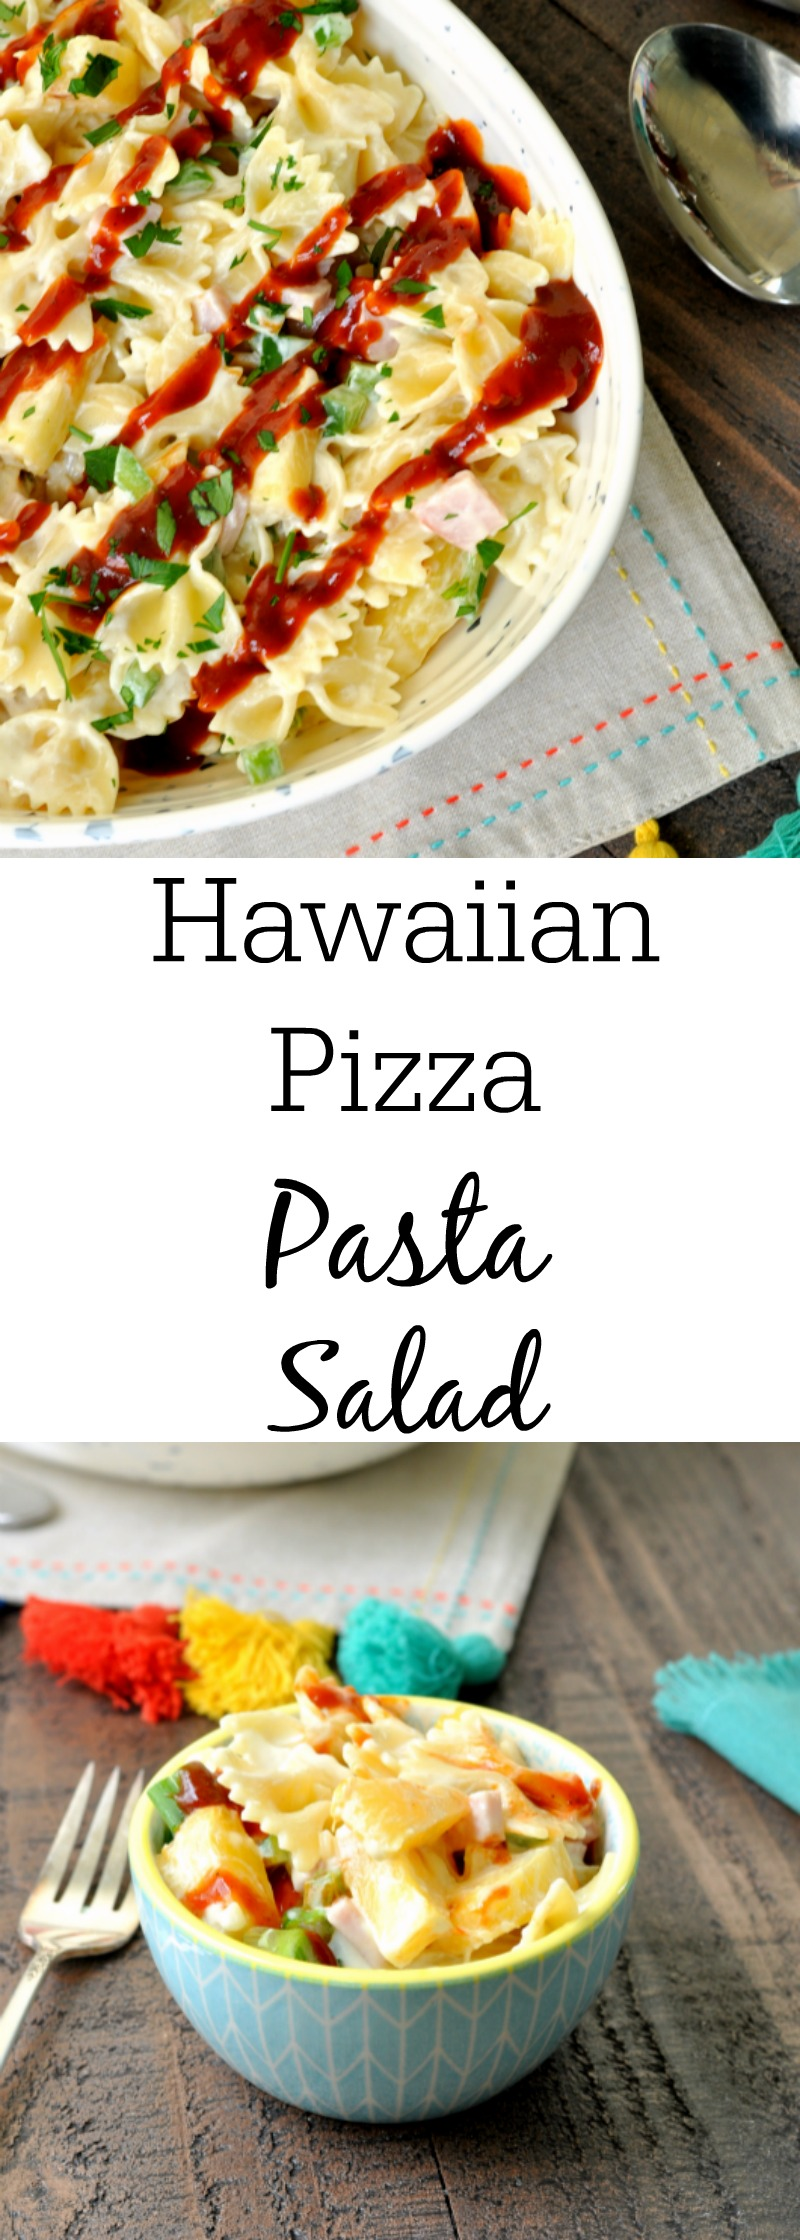 Hawaiian Pizza Pasta Salad